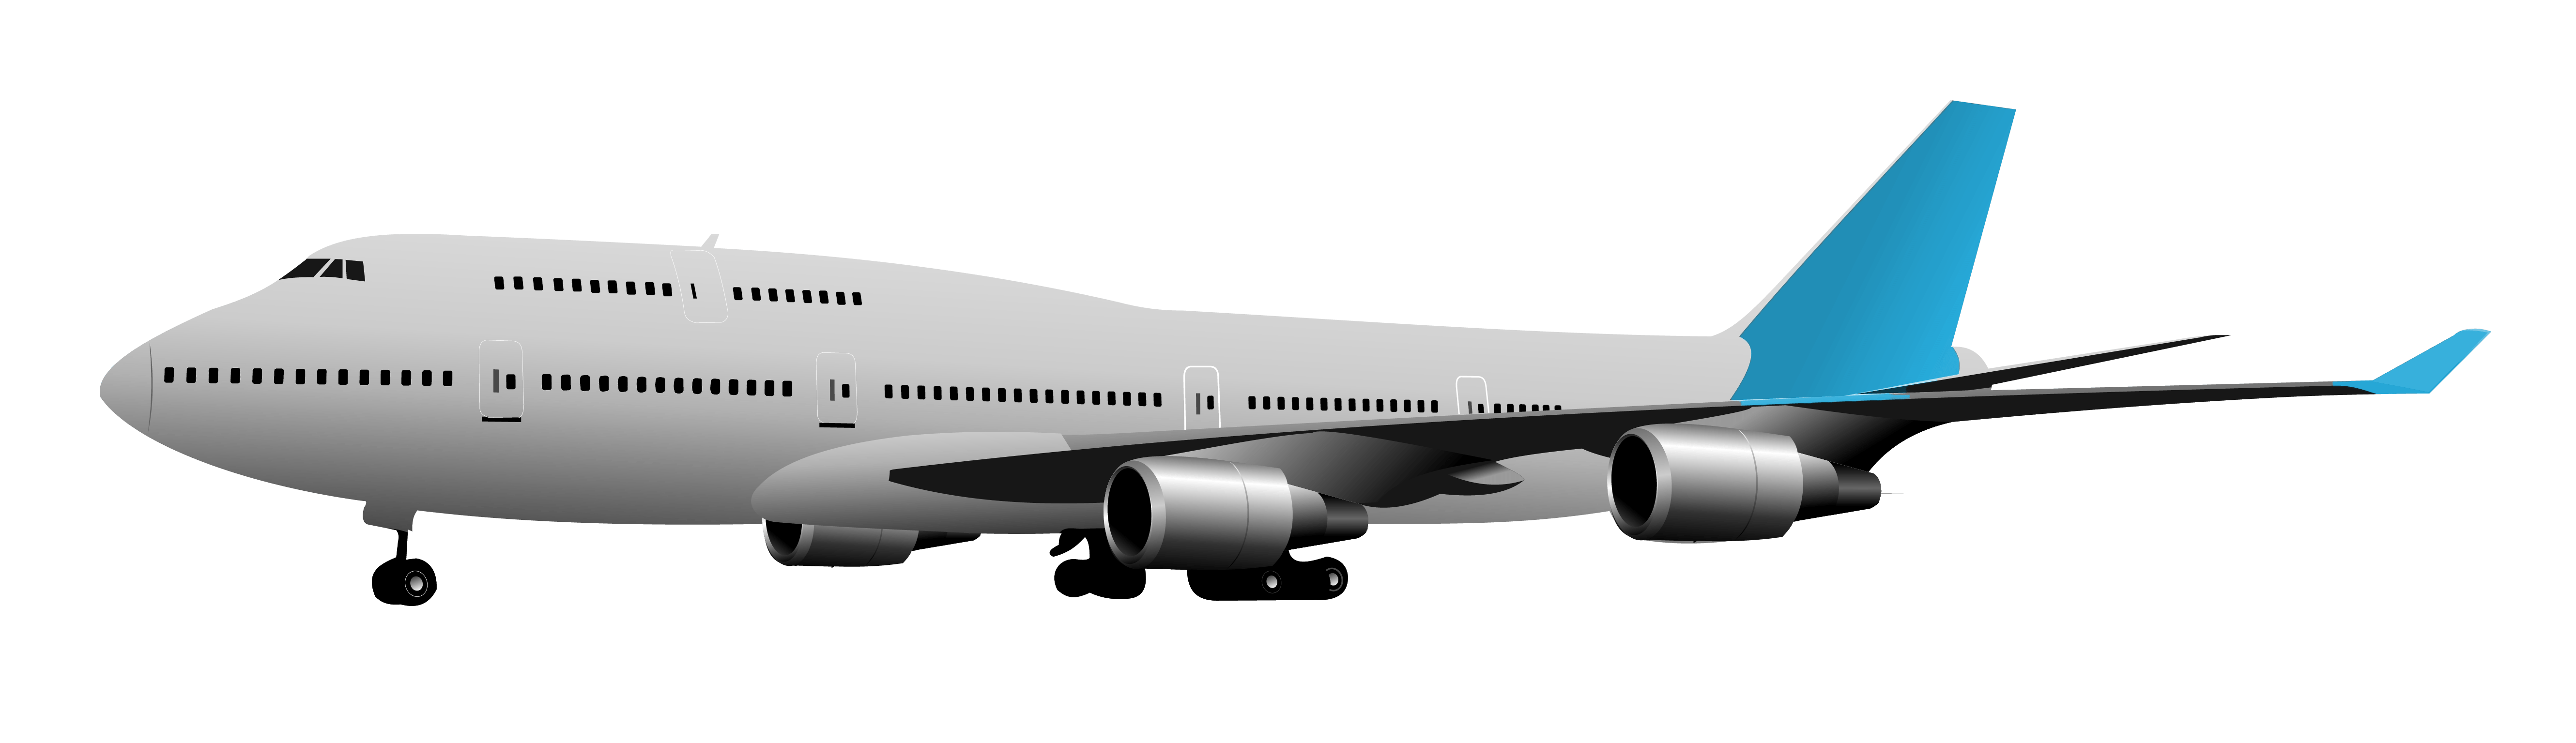 Boeing Airplane Boeing Airplane Clipart Clipground